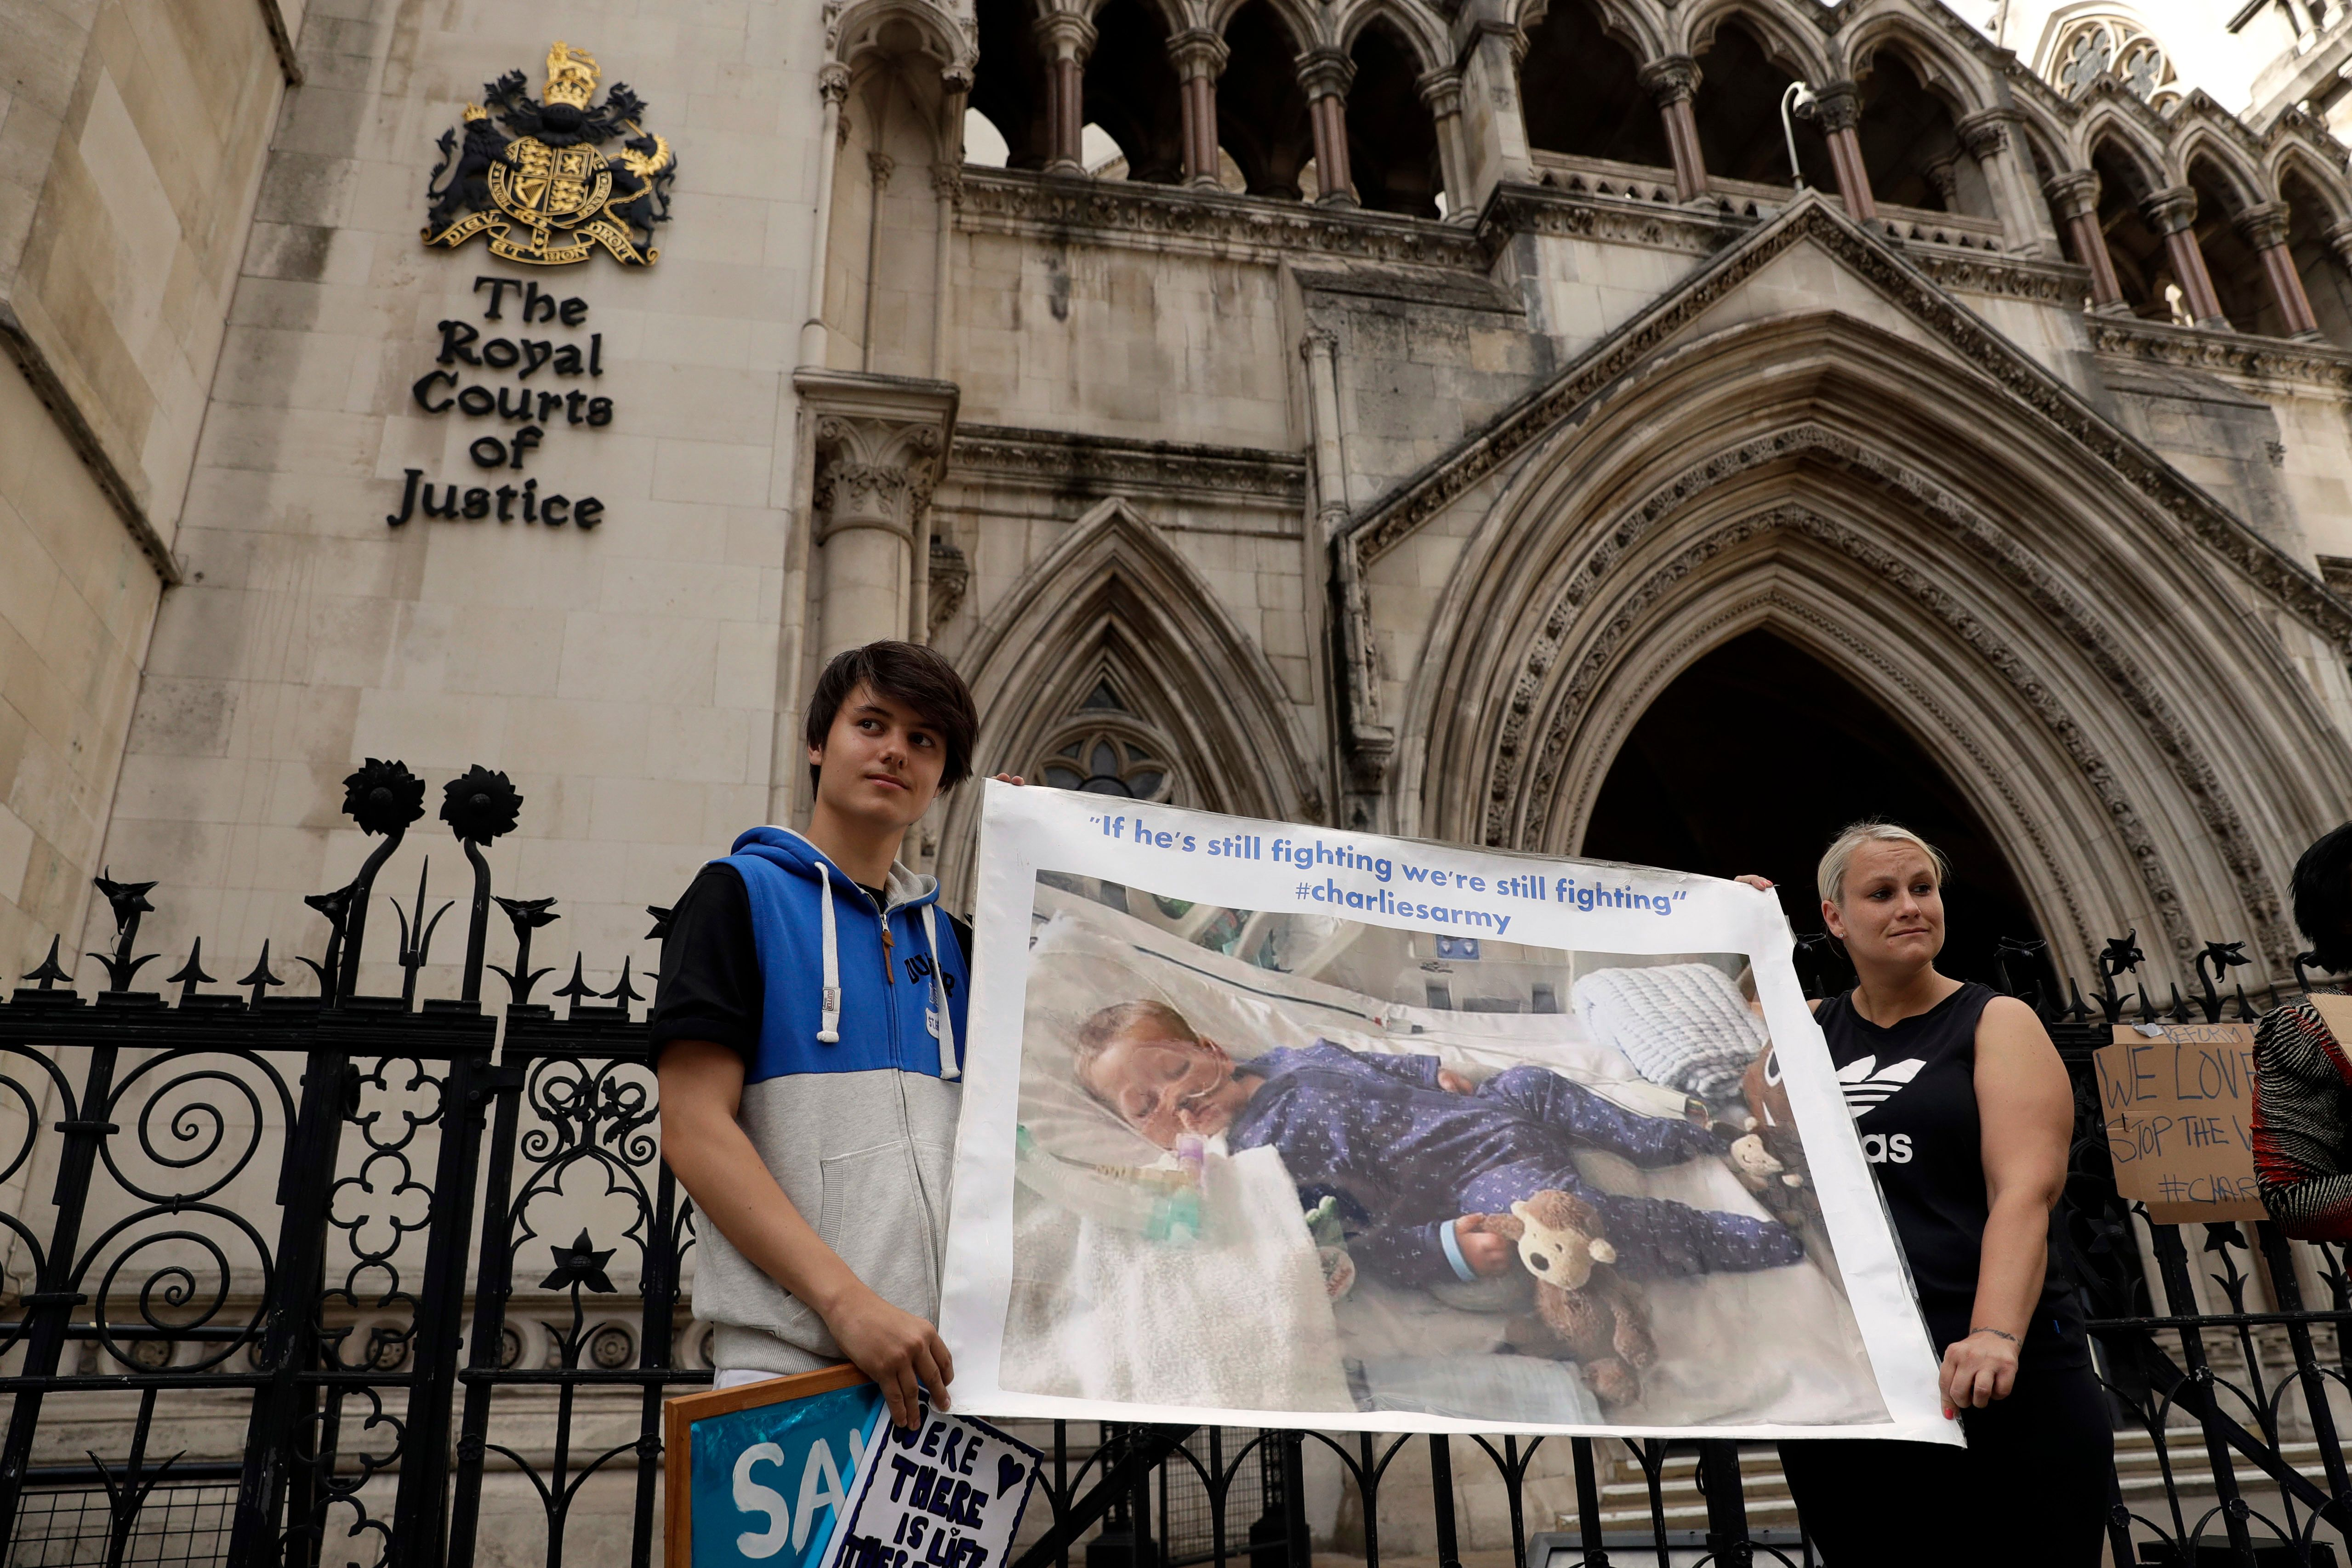 Charlie Gard: American doctor evaluates terminally ill British baby